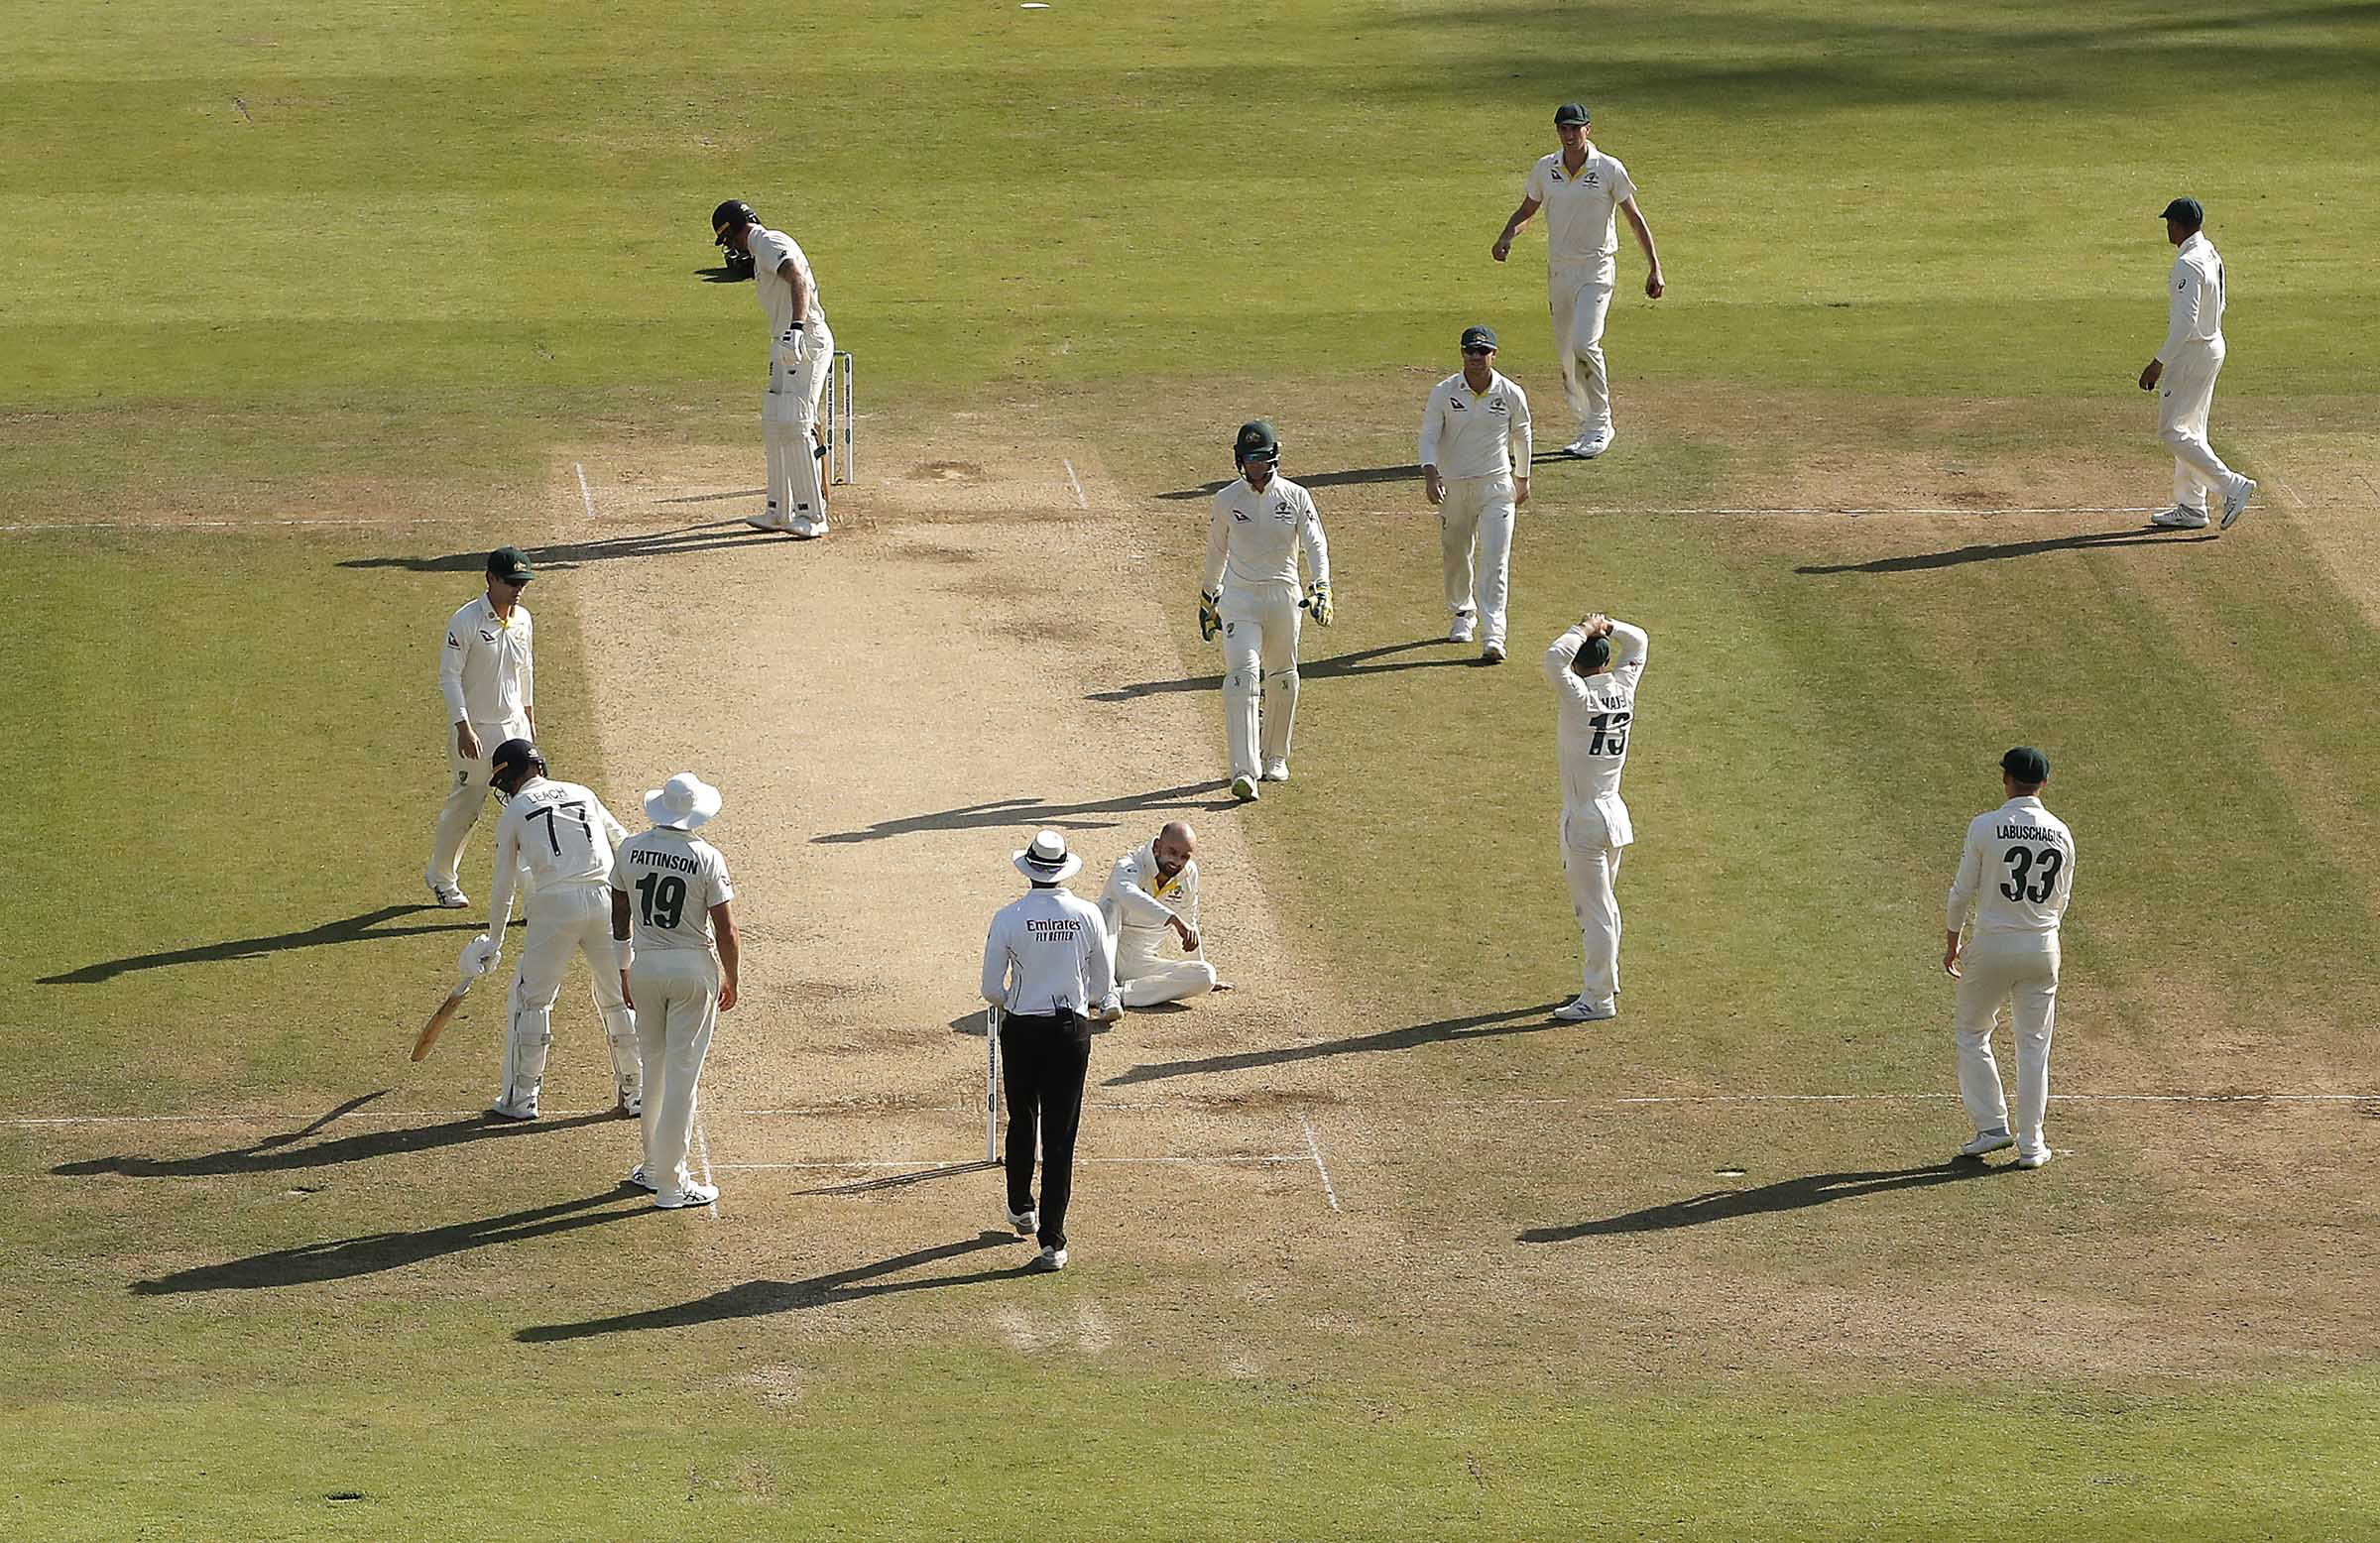 A forlorn Lyon after Stokes was given not out lbw // Getty